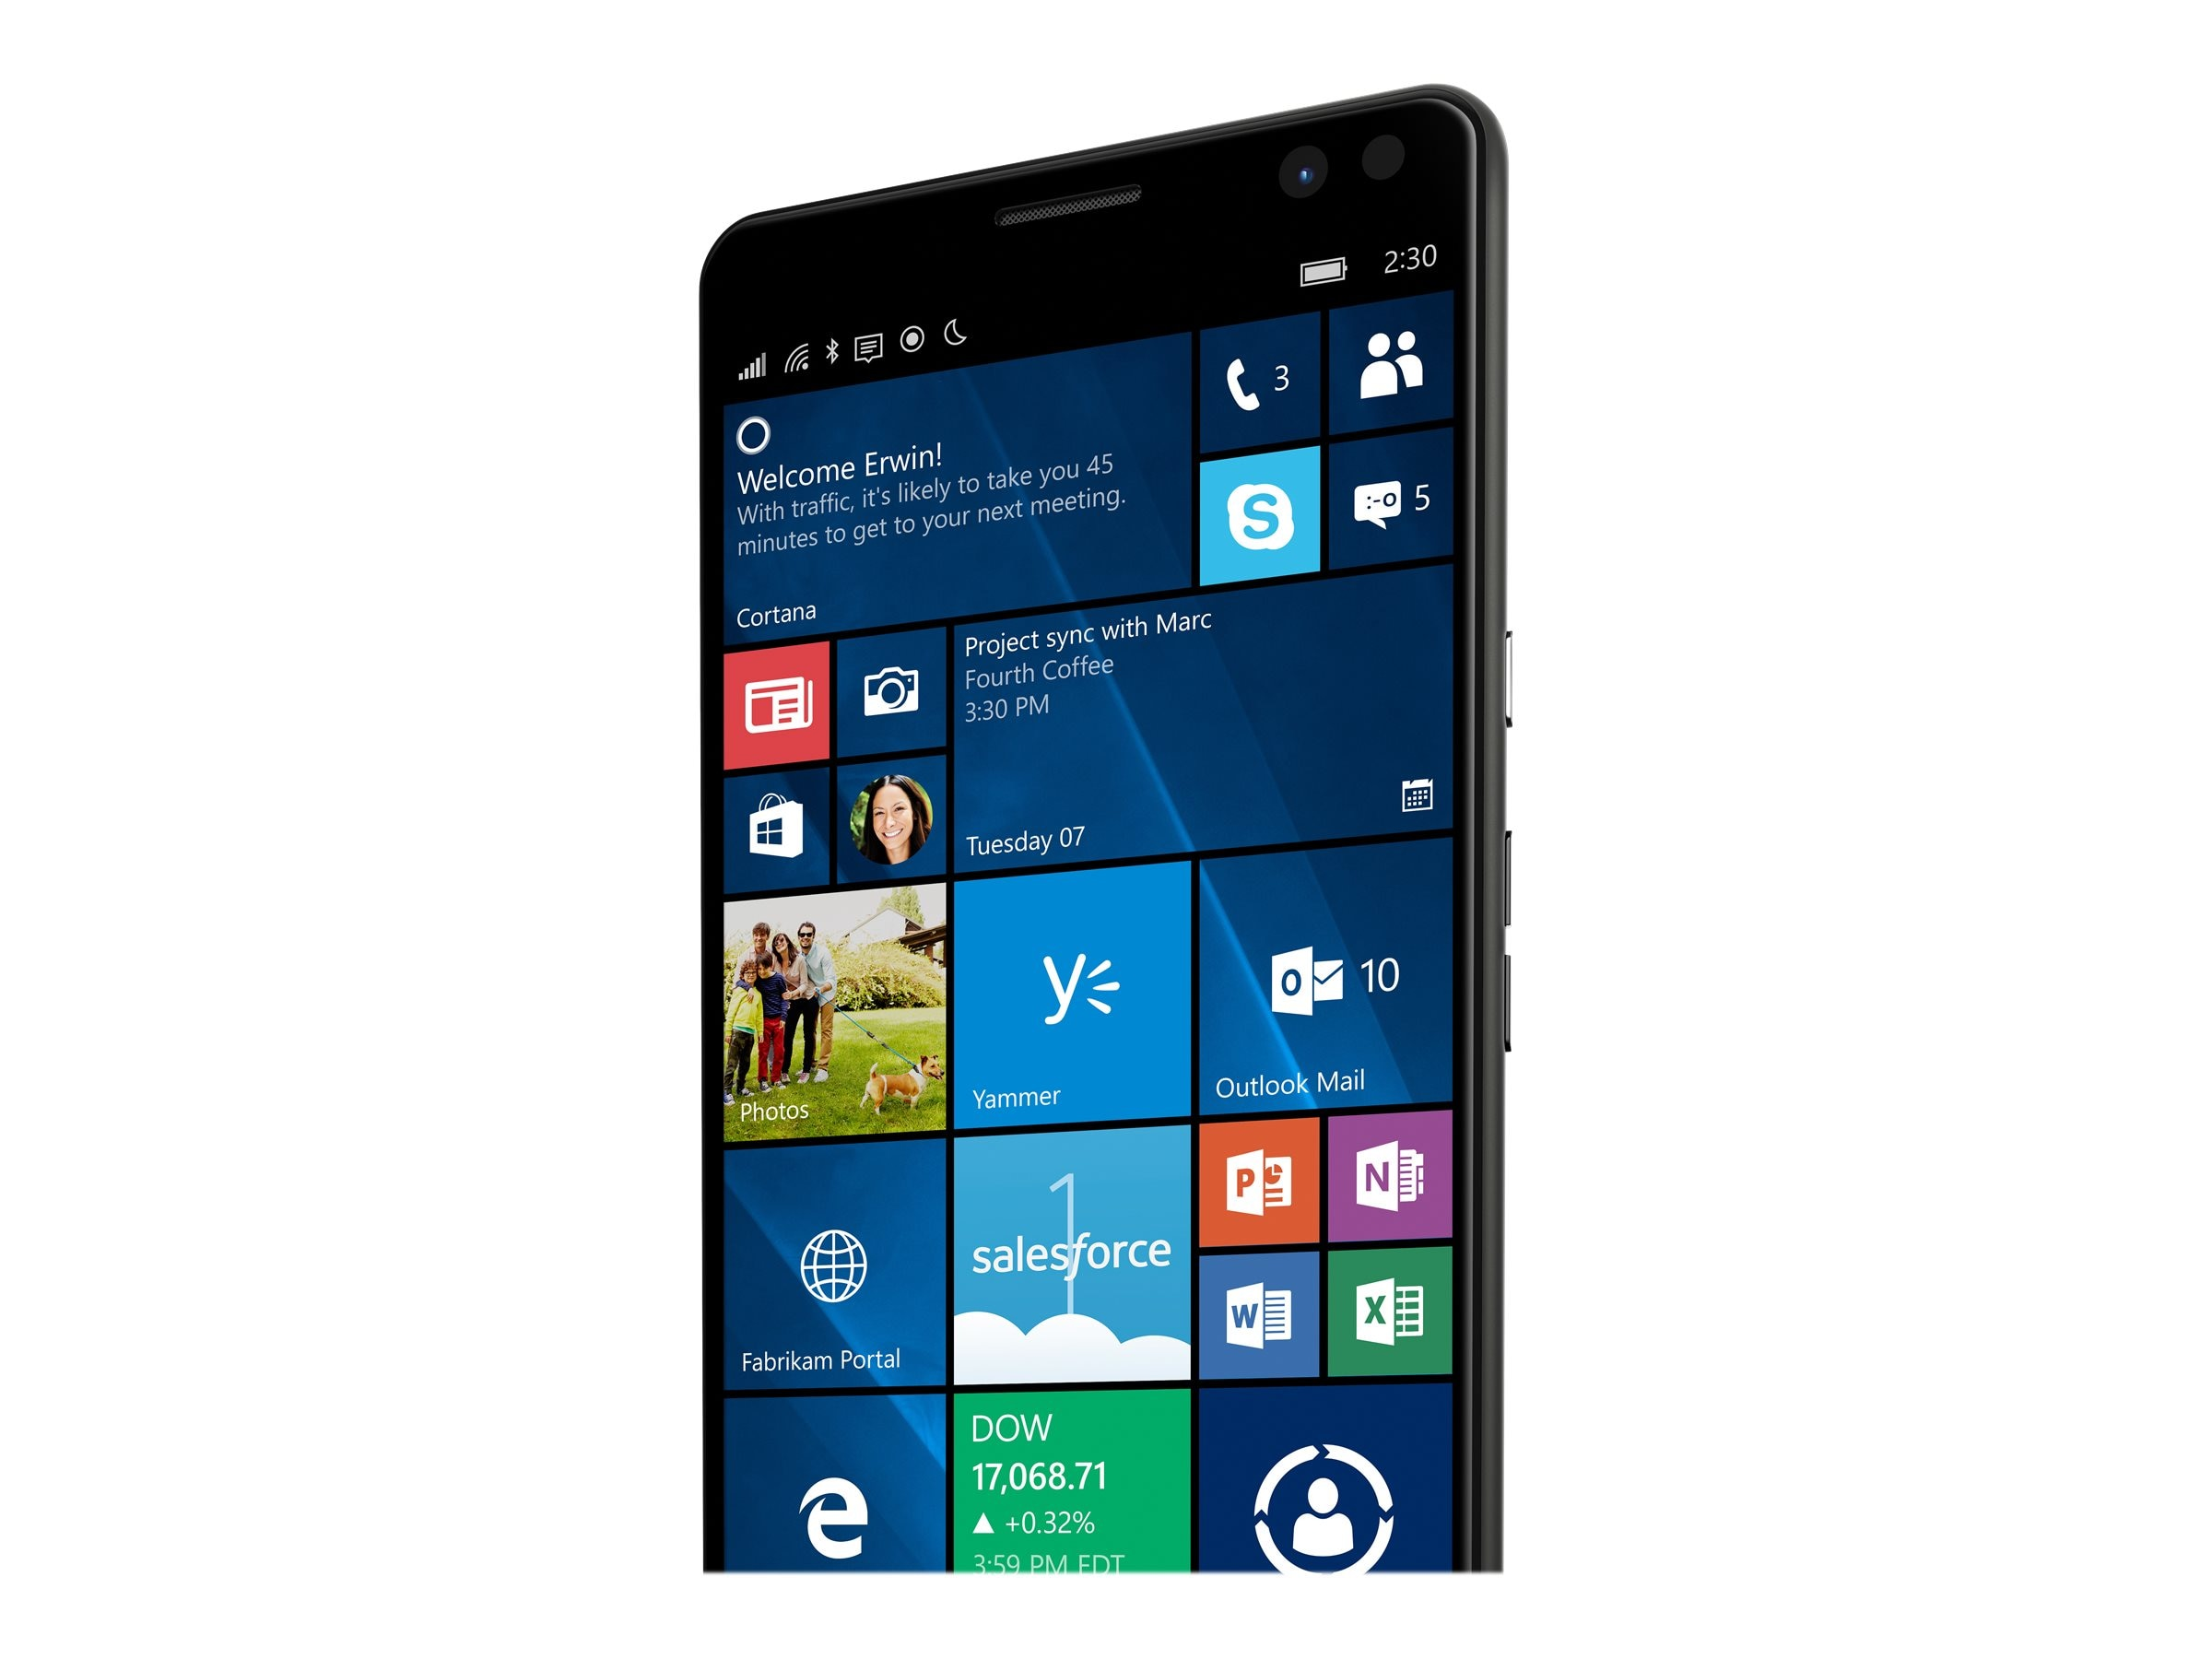 HP Elite x3 SD 820 2.15GHz 4GB 64GB ac abgn BT LTE FR 2xWC Dock 6 WQHD MT W10M, X9U42UT#ABA